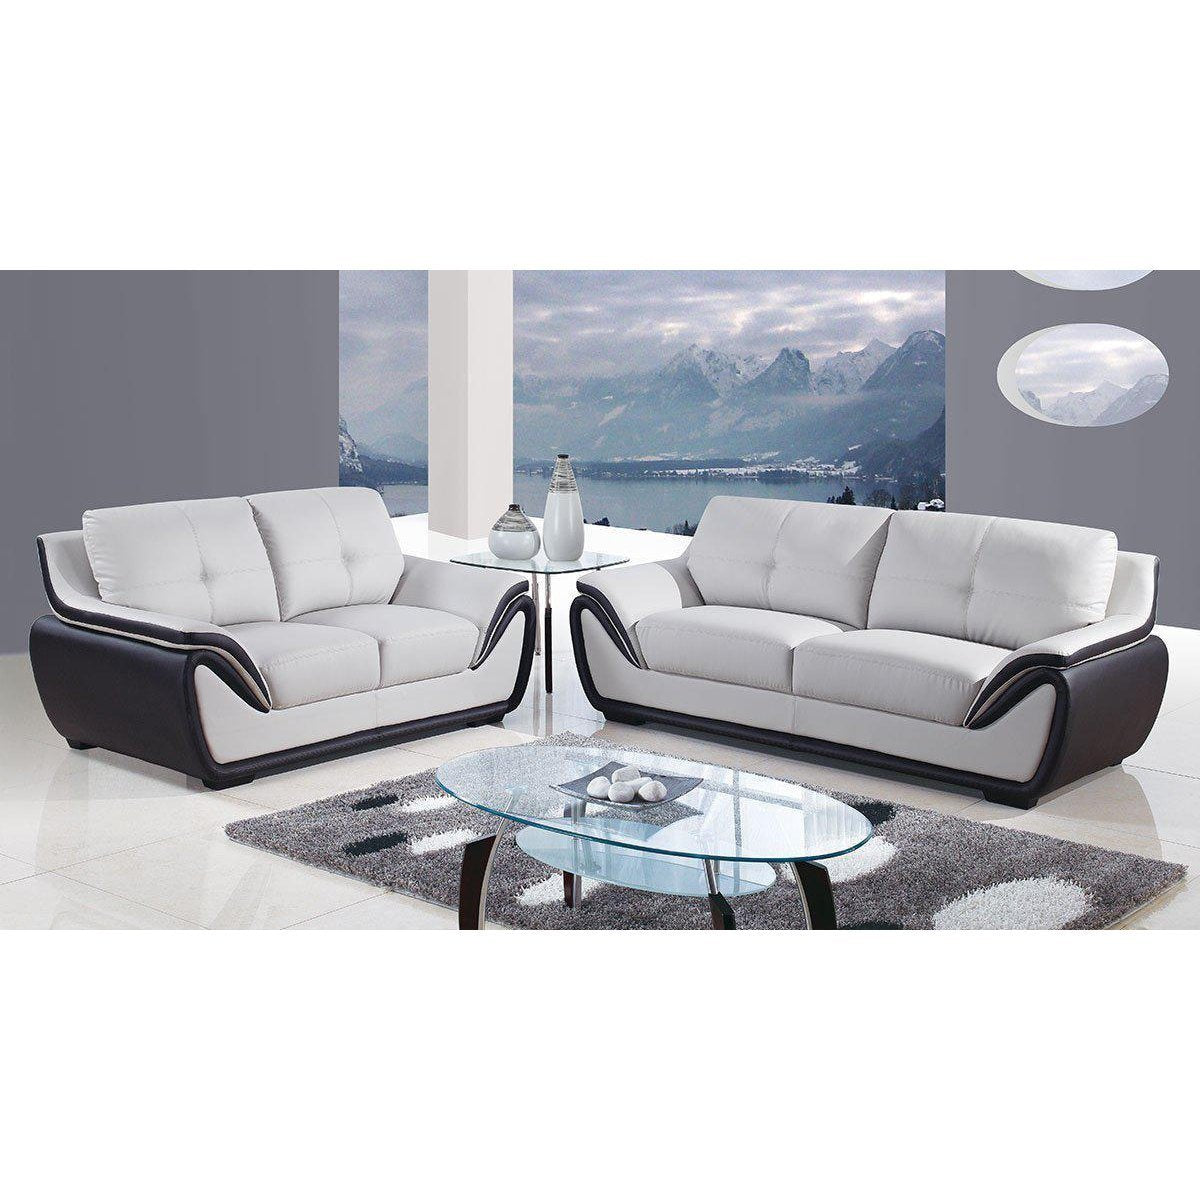 Schneider Living Room Set